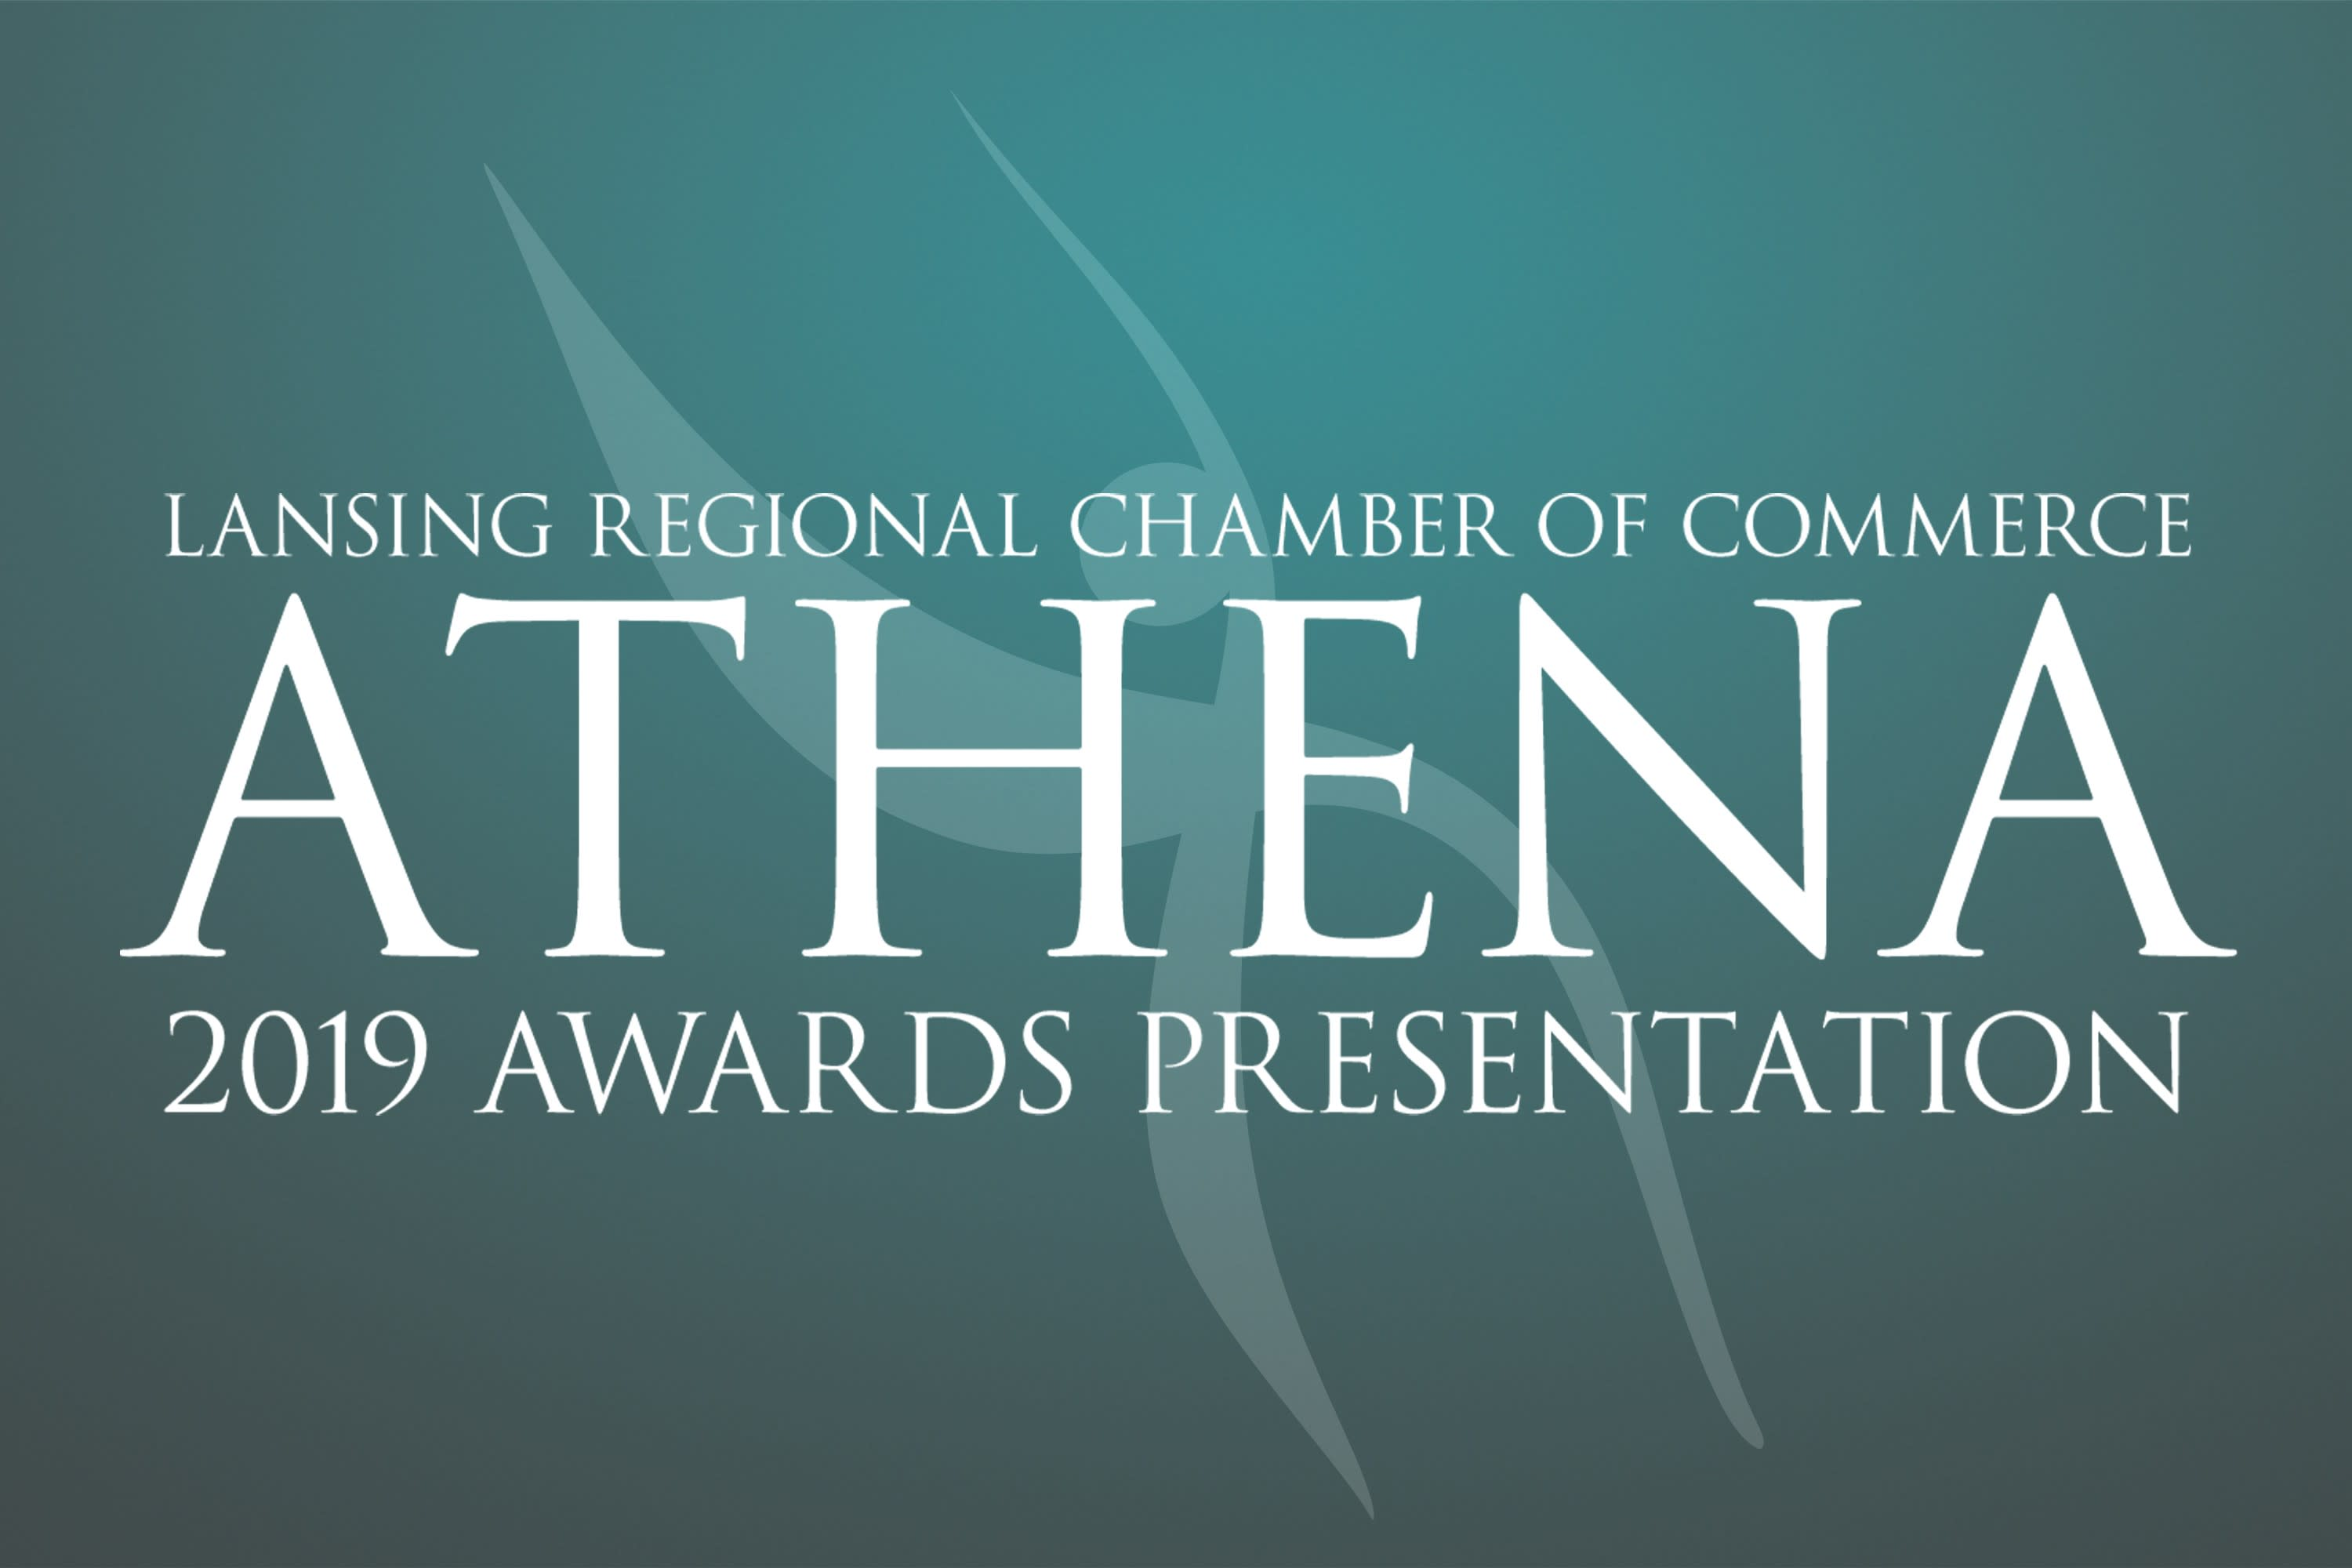 2019 ATHENA Awards